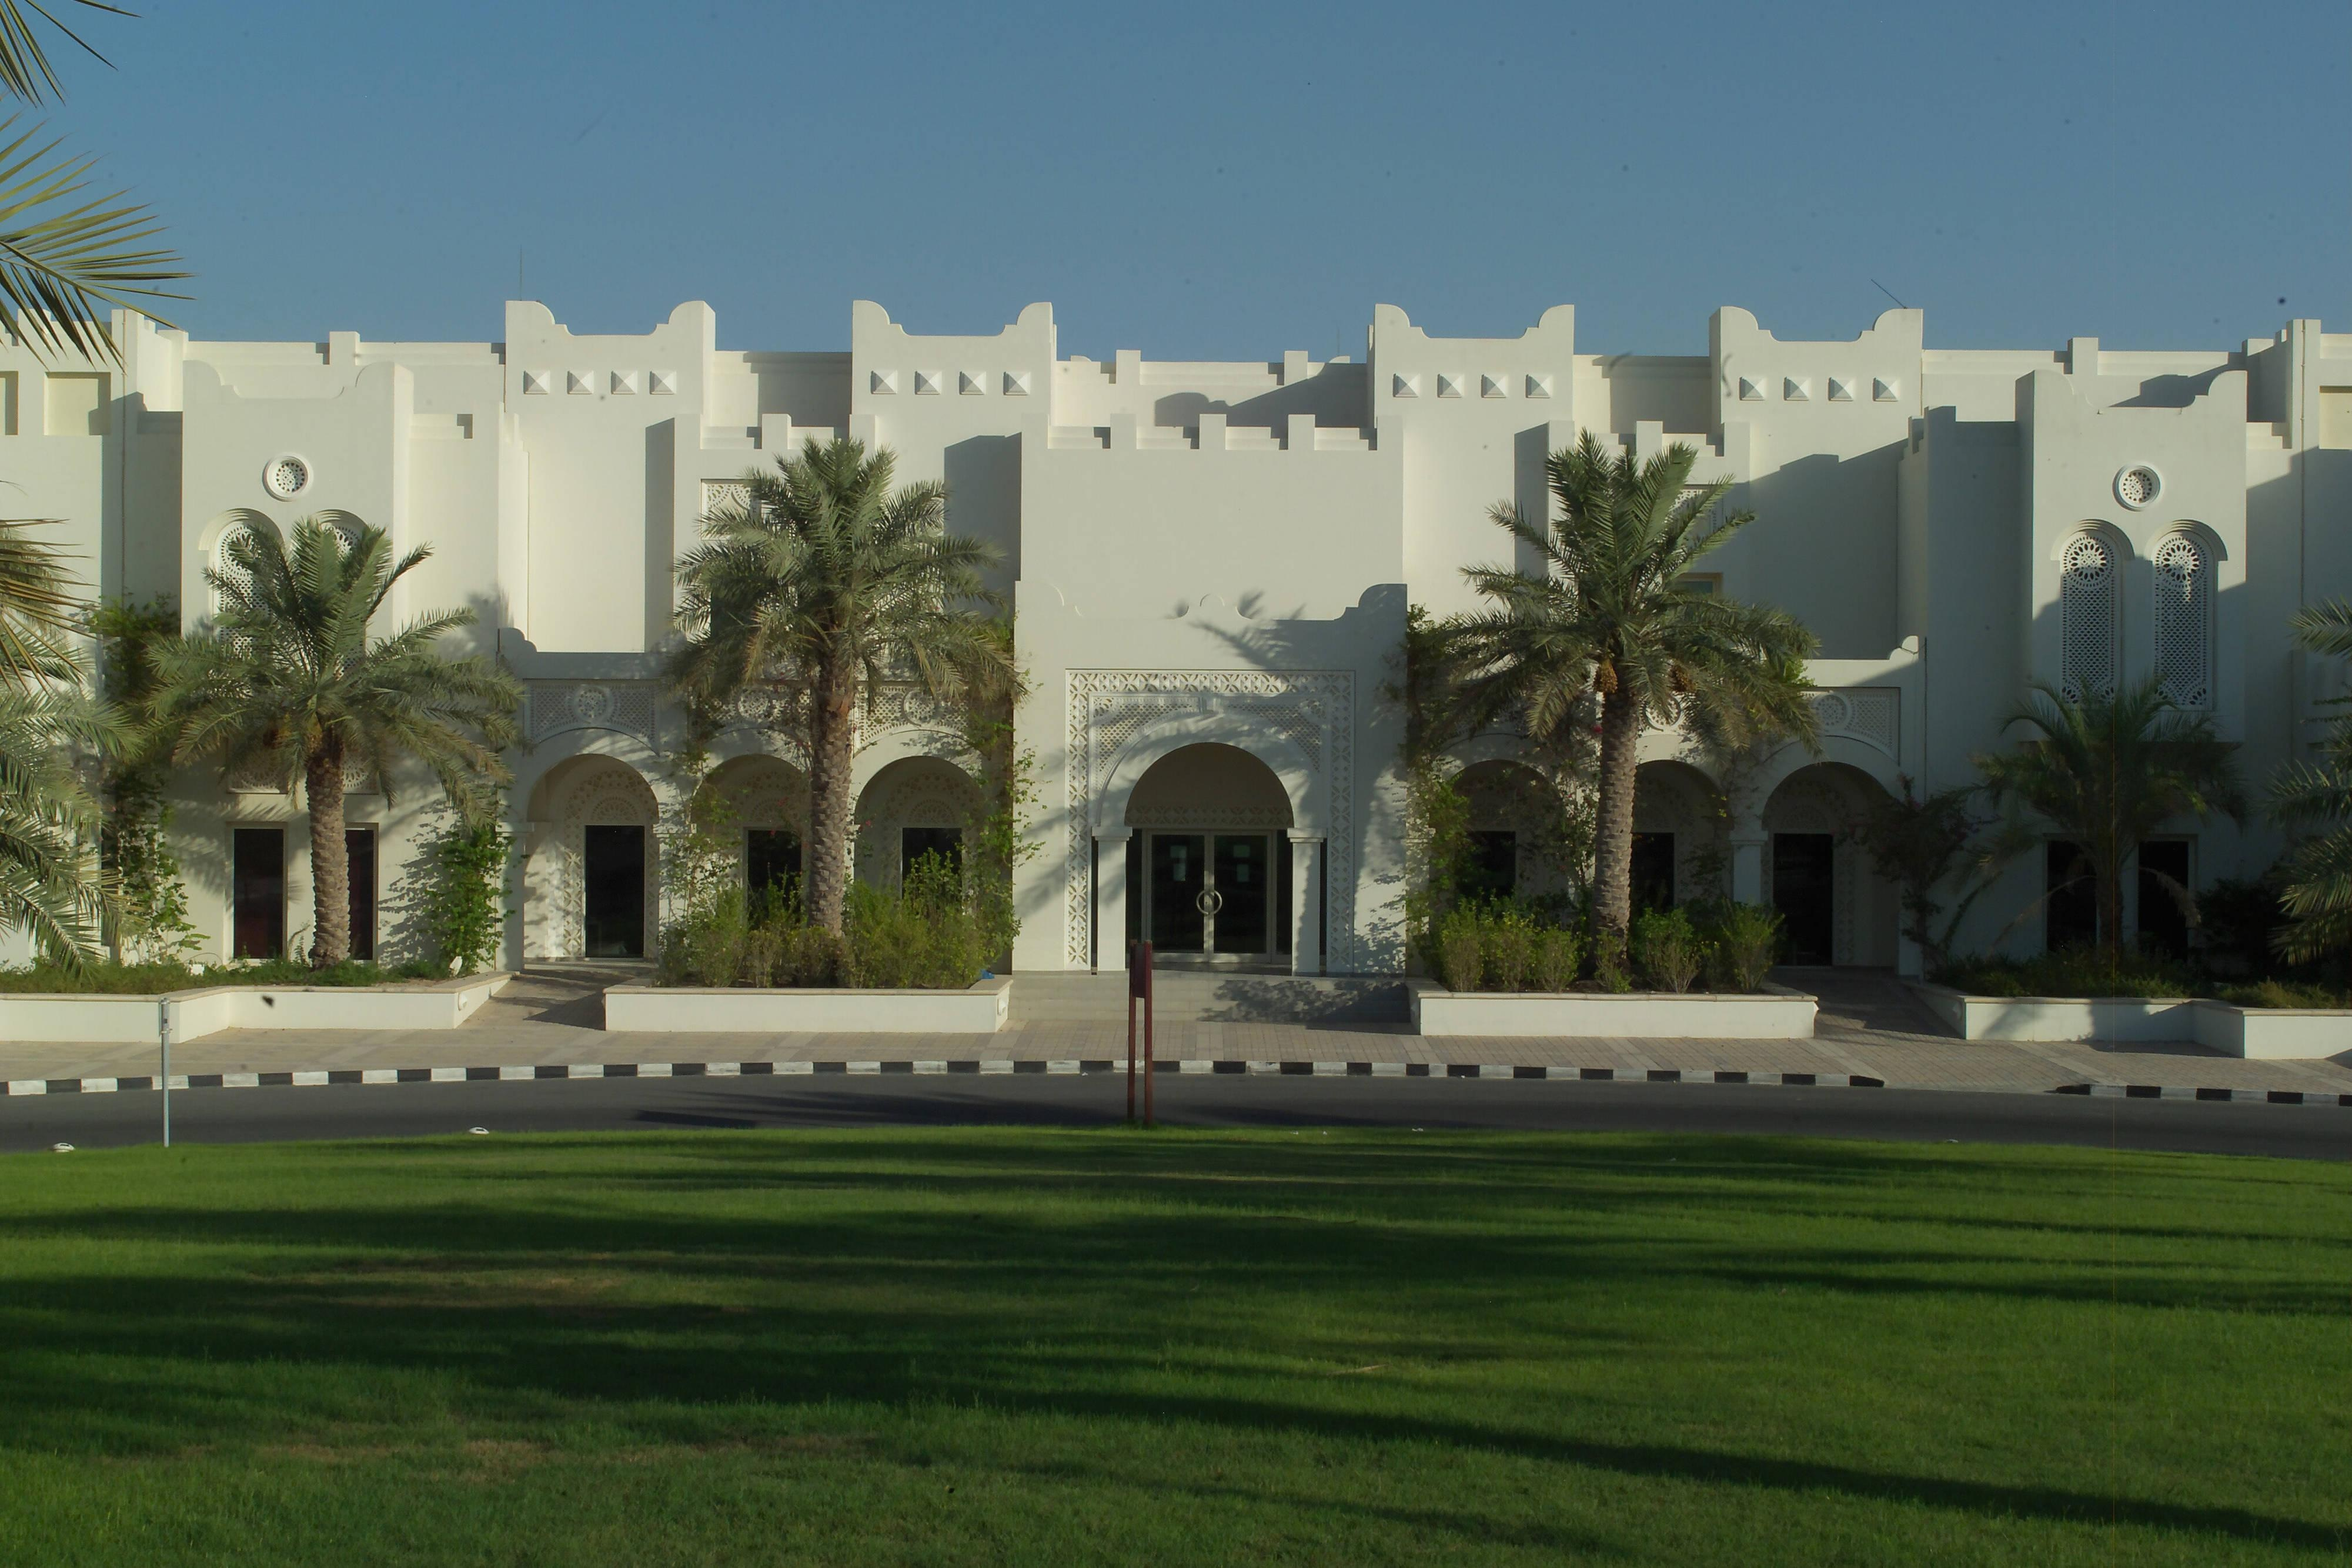 Sightseeing: Qatar Foundation